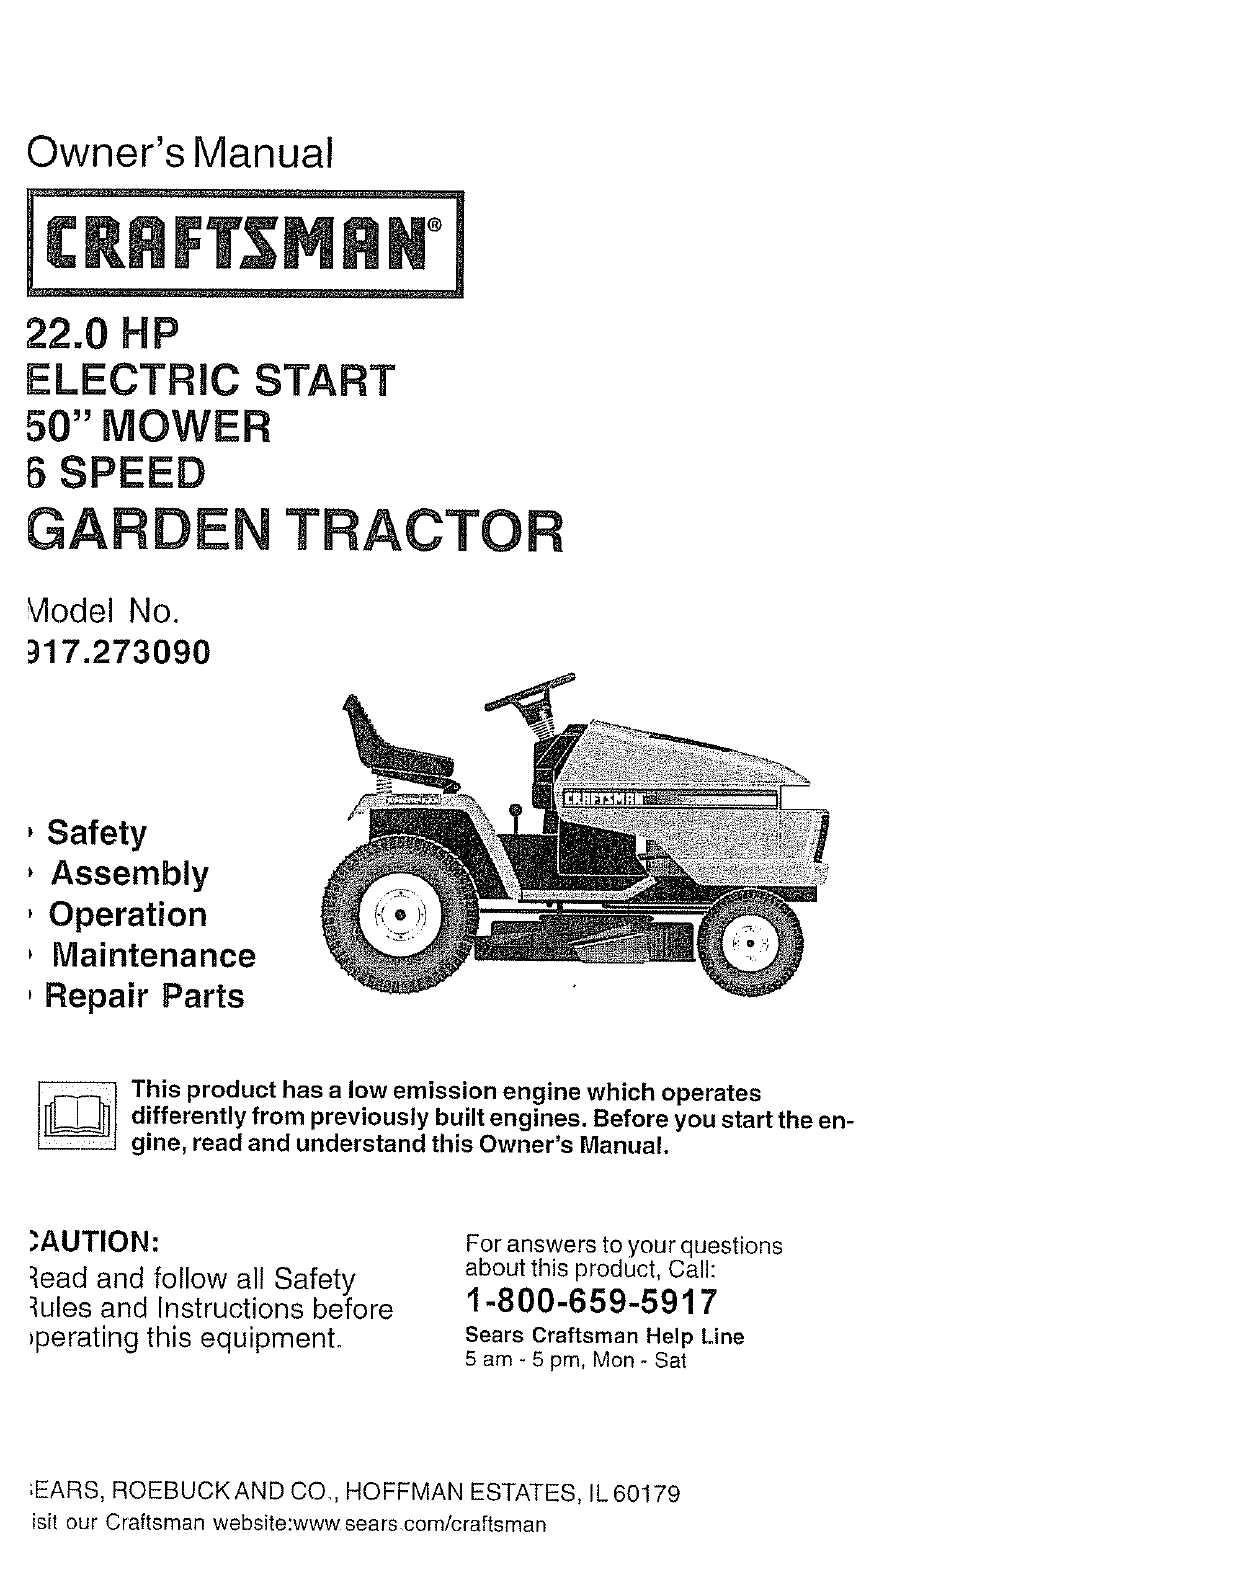 Craftsman 917273090 User Manual TRACTOR Manuals And Guides